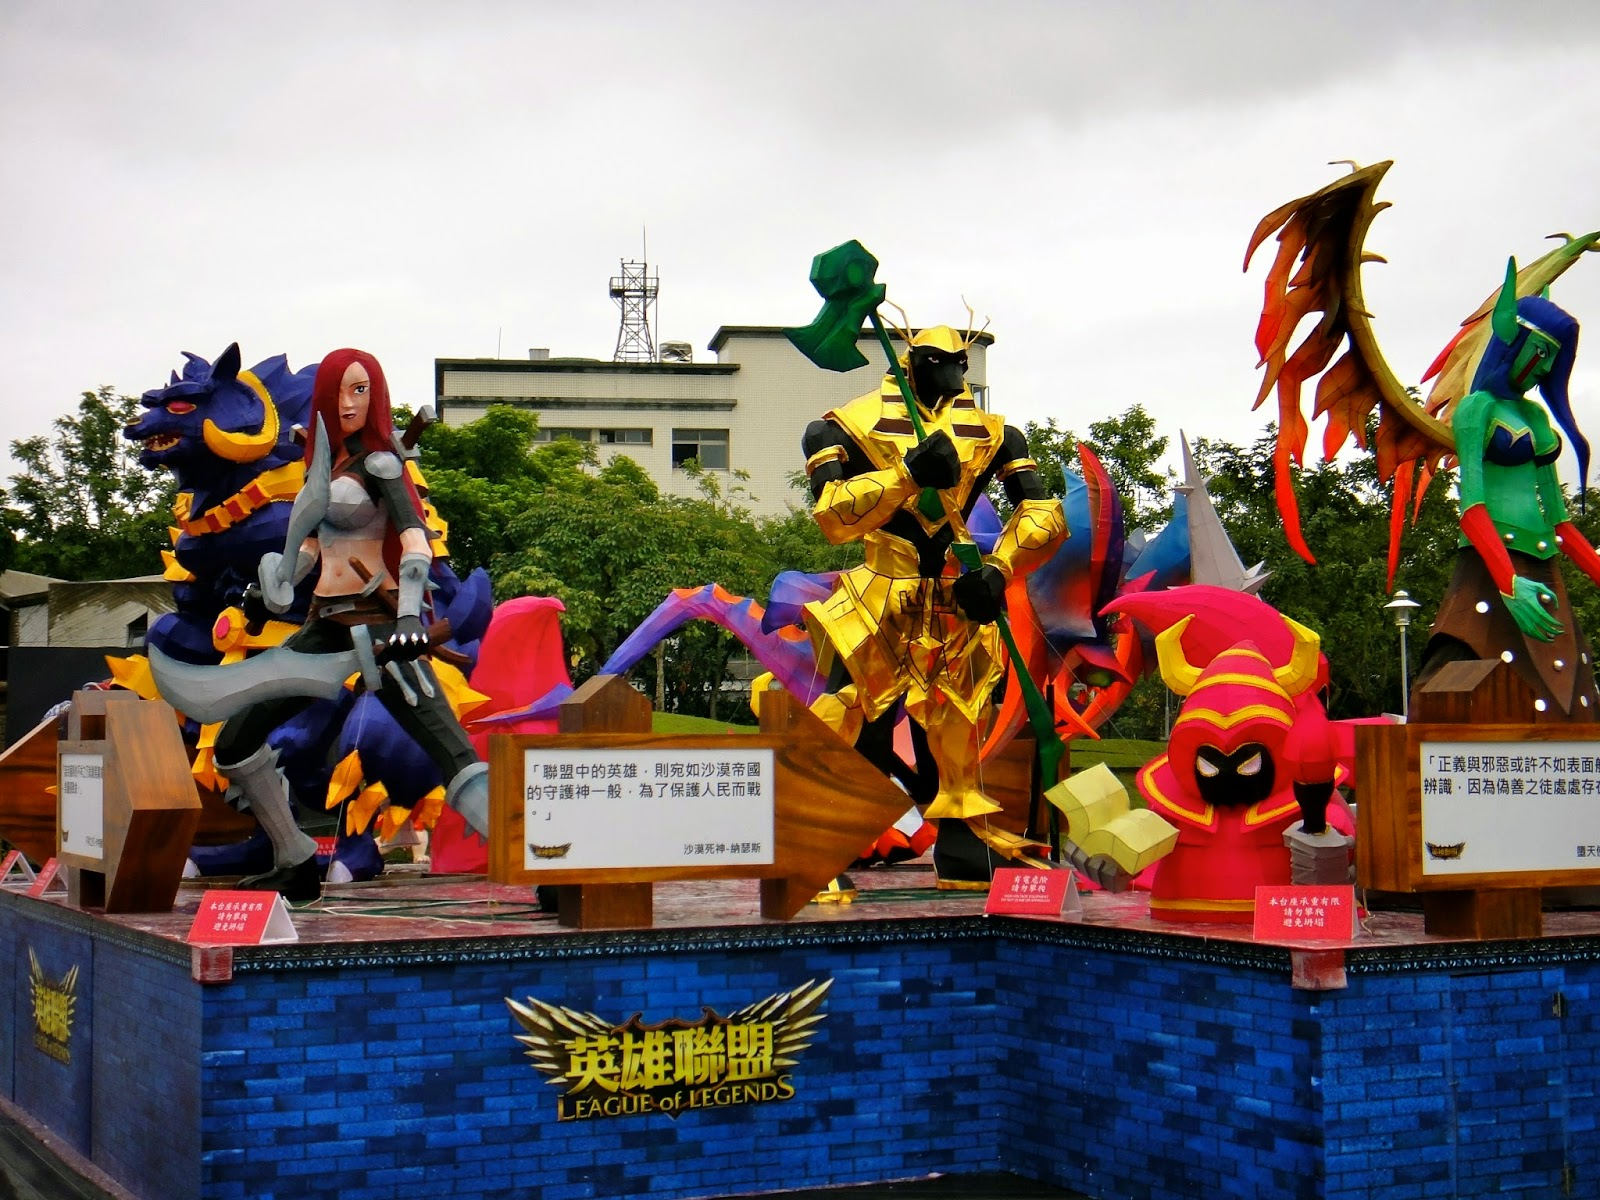 League of Legends Lantern Festival Taiwan